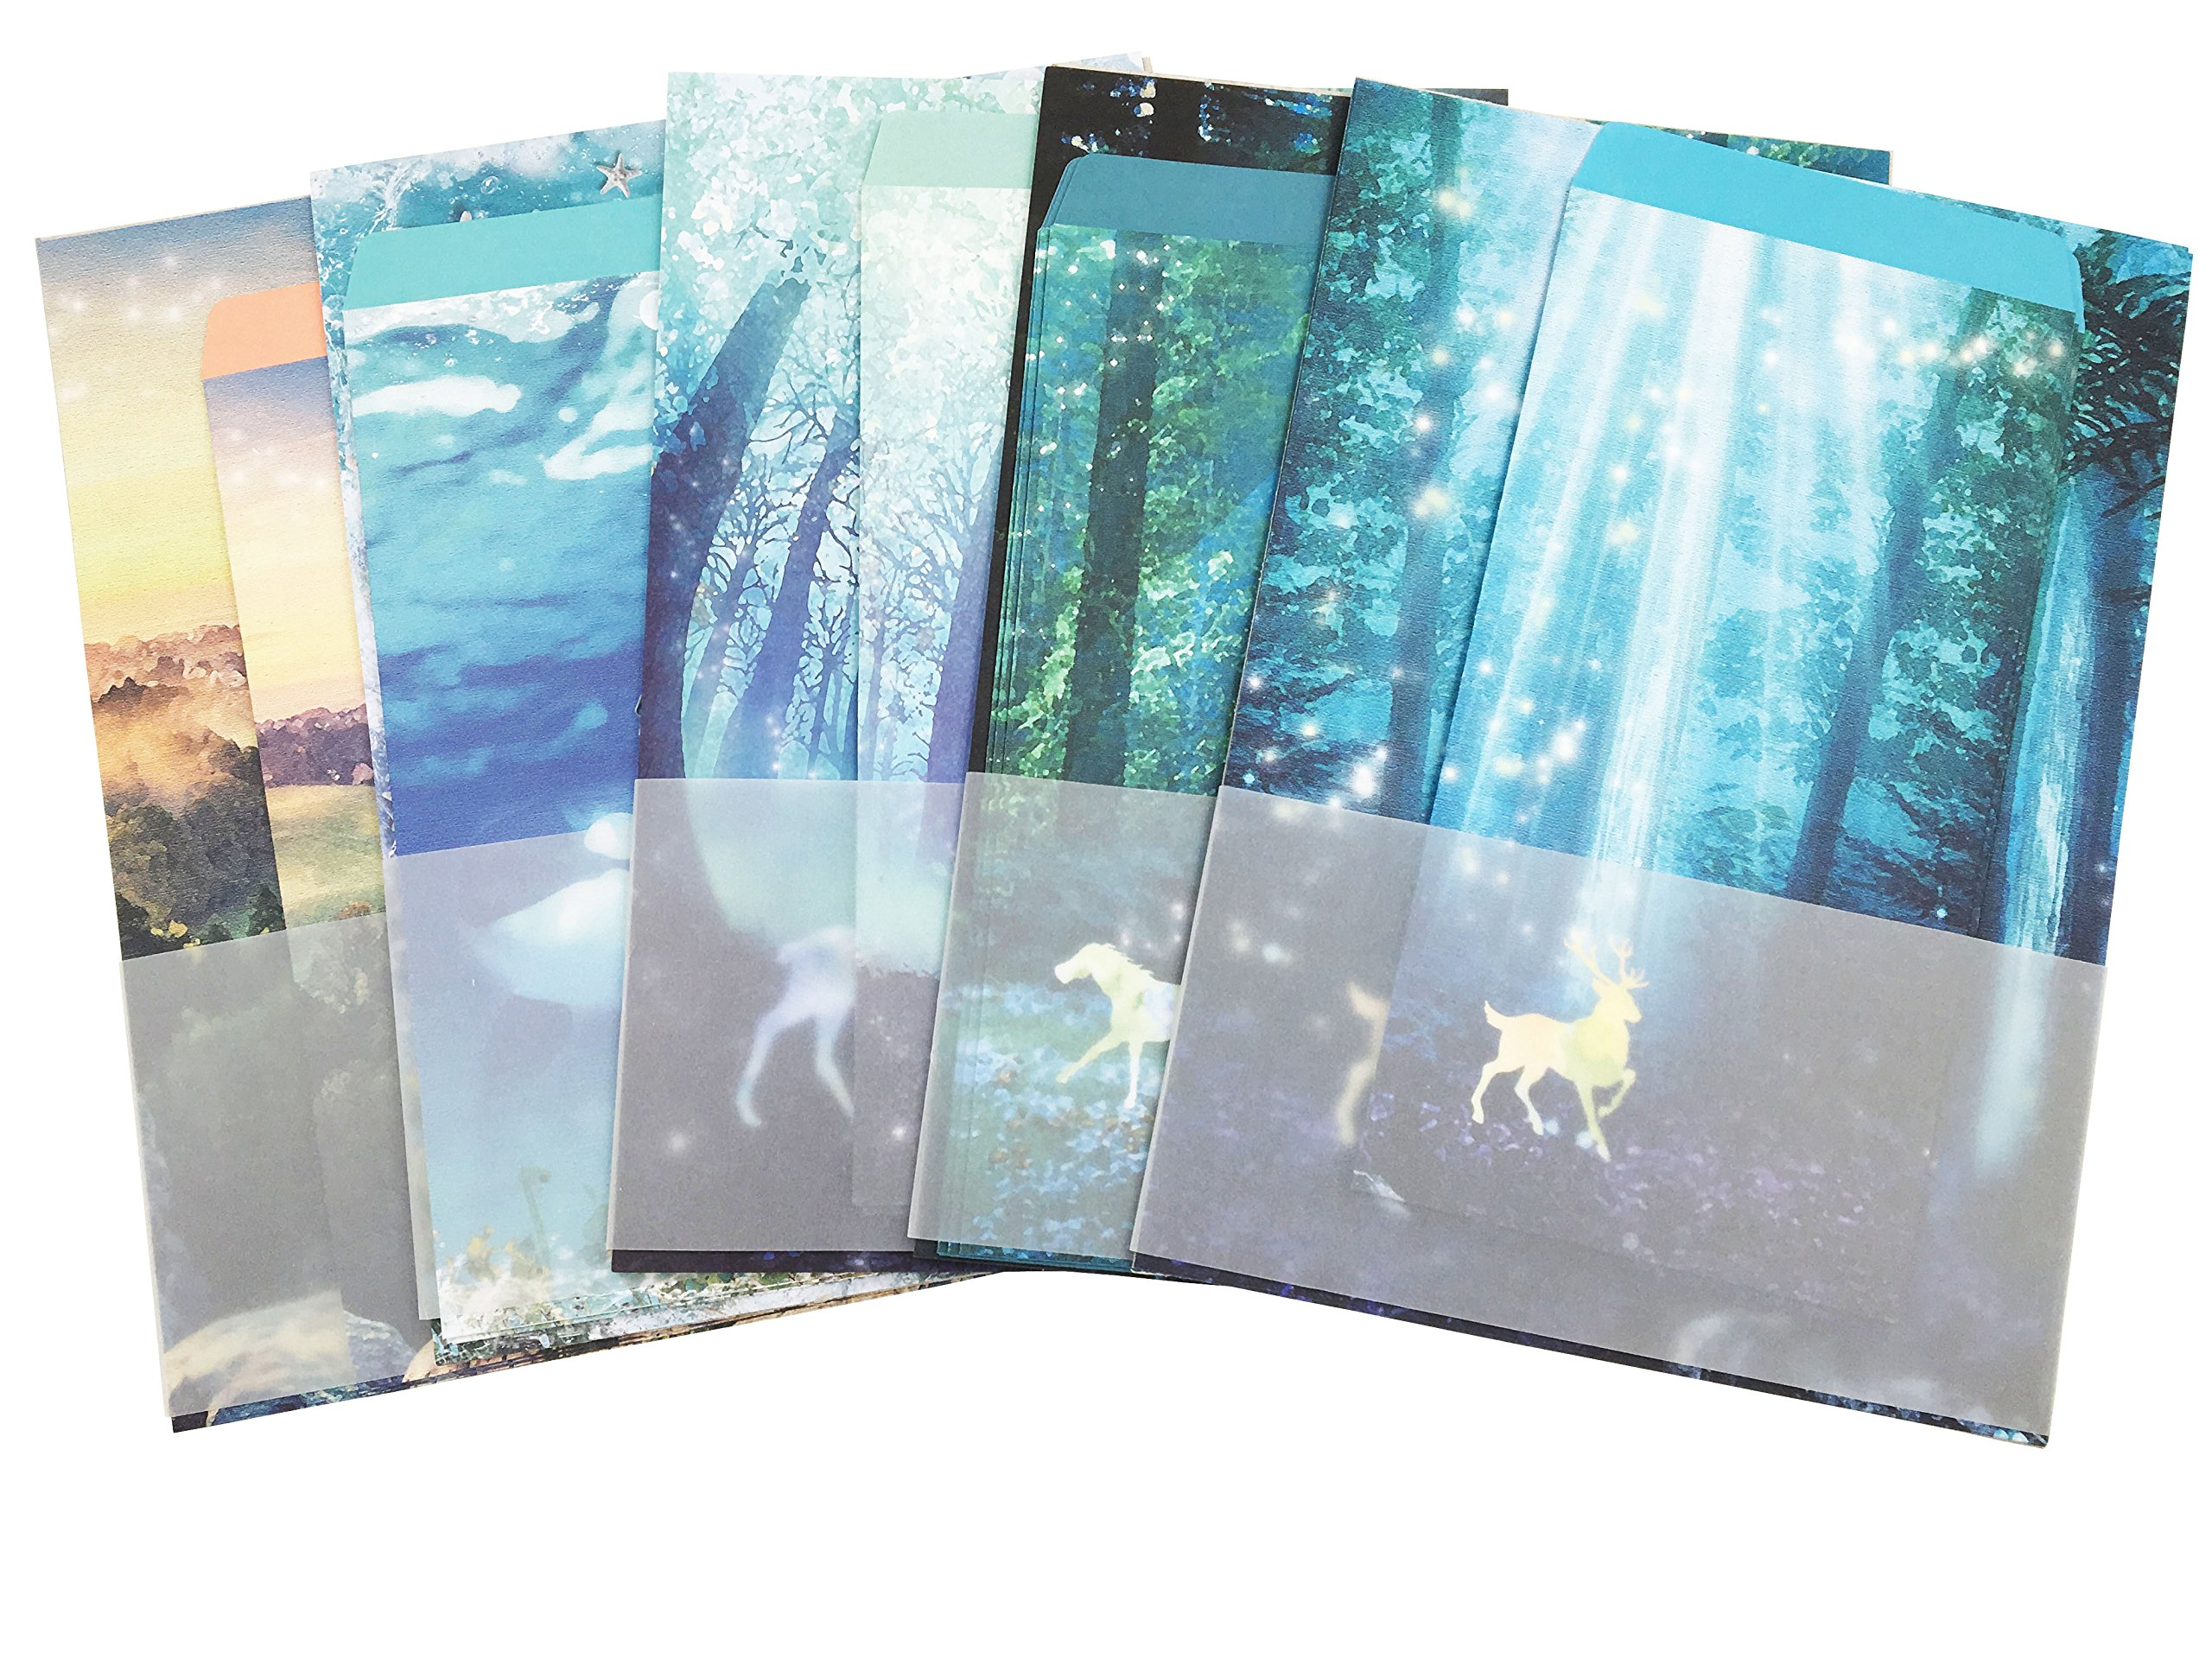 Eternityfing Natural Scenery Lined Writing Paper and Envelopes Stationery Sets-30 Sheets with 15pcs Envelopes